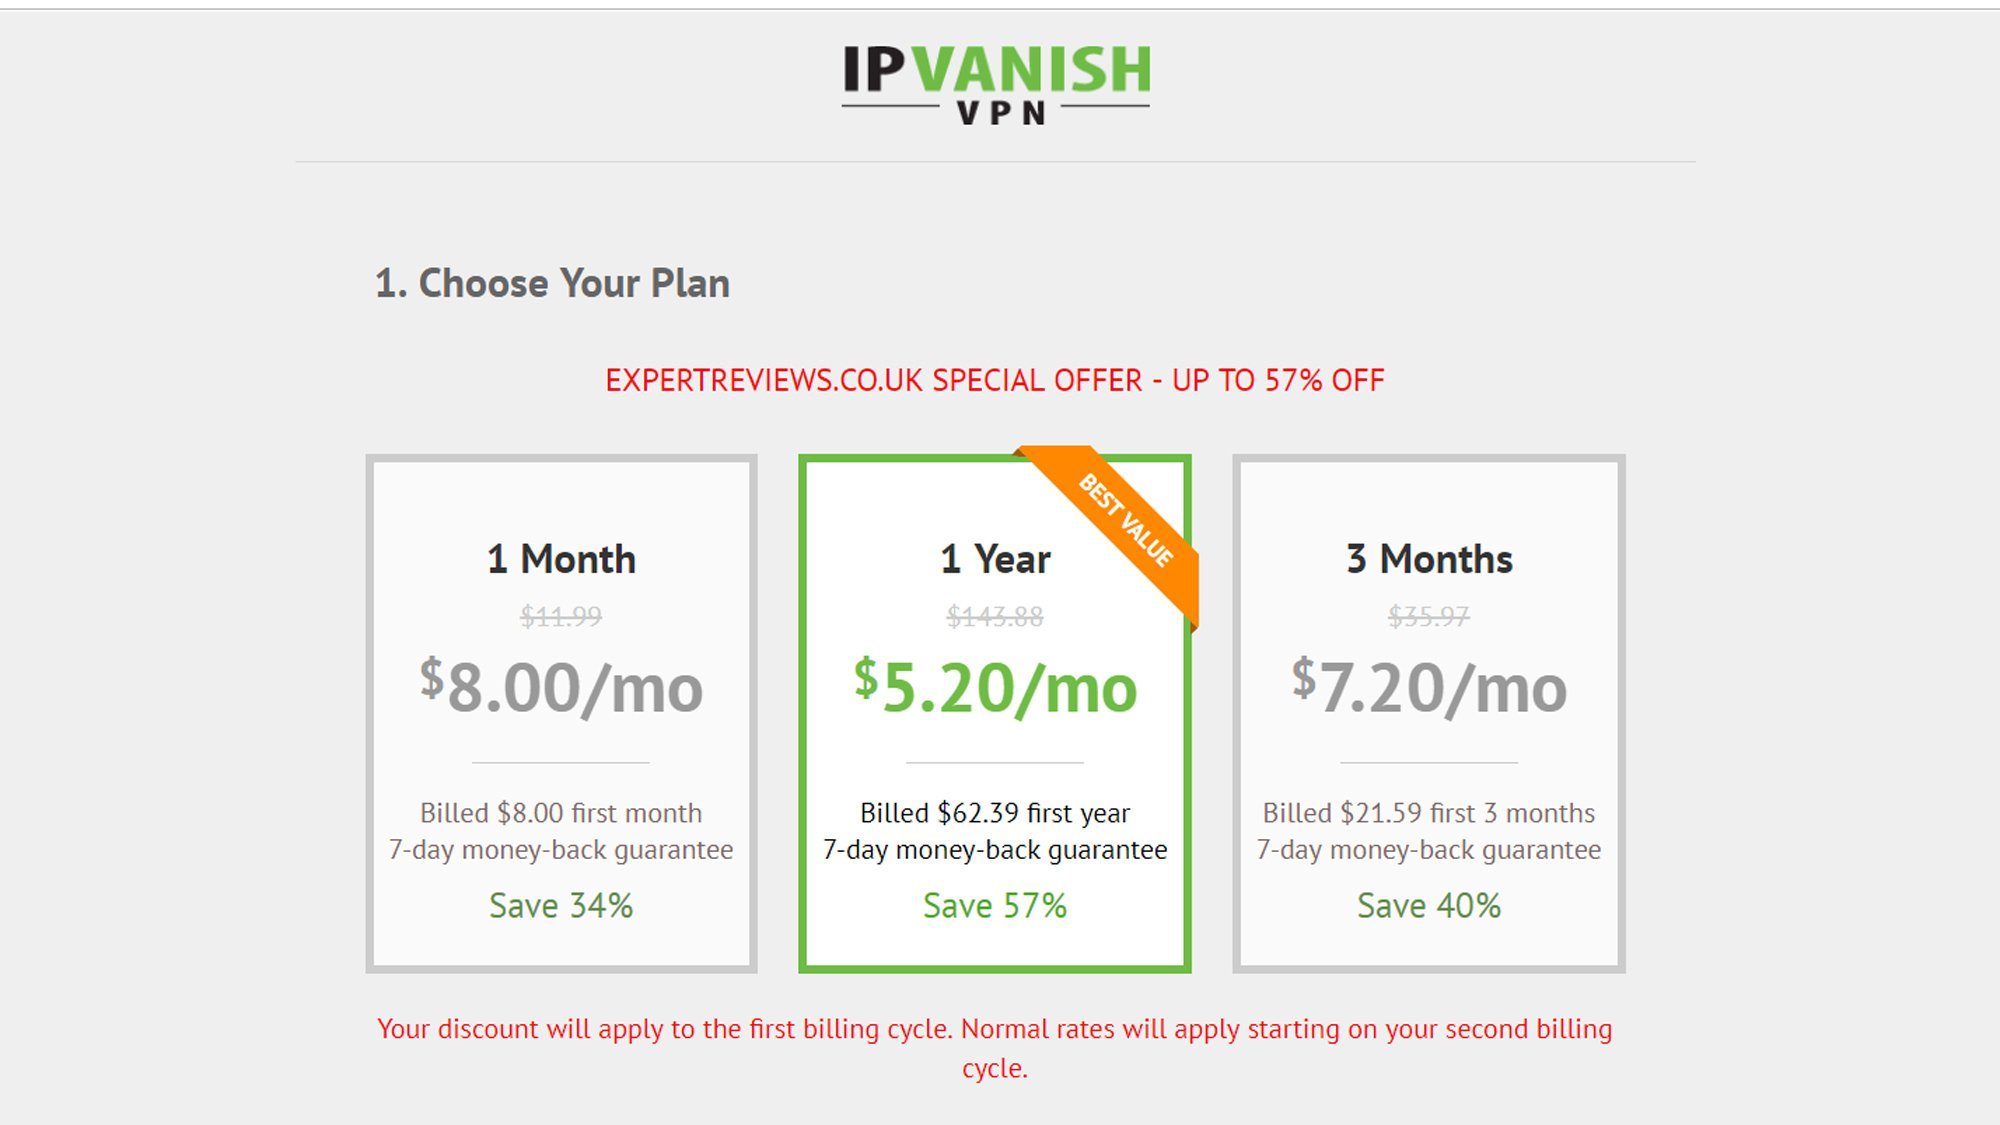 Ipvanish Port 443 Vs 1194